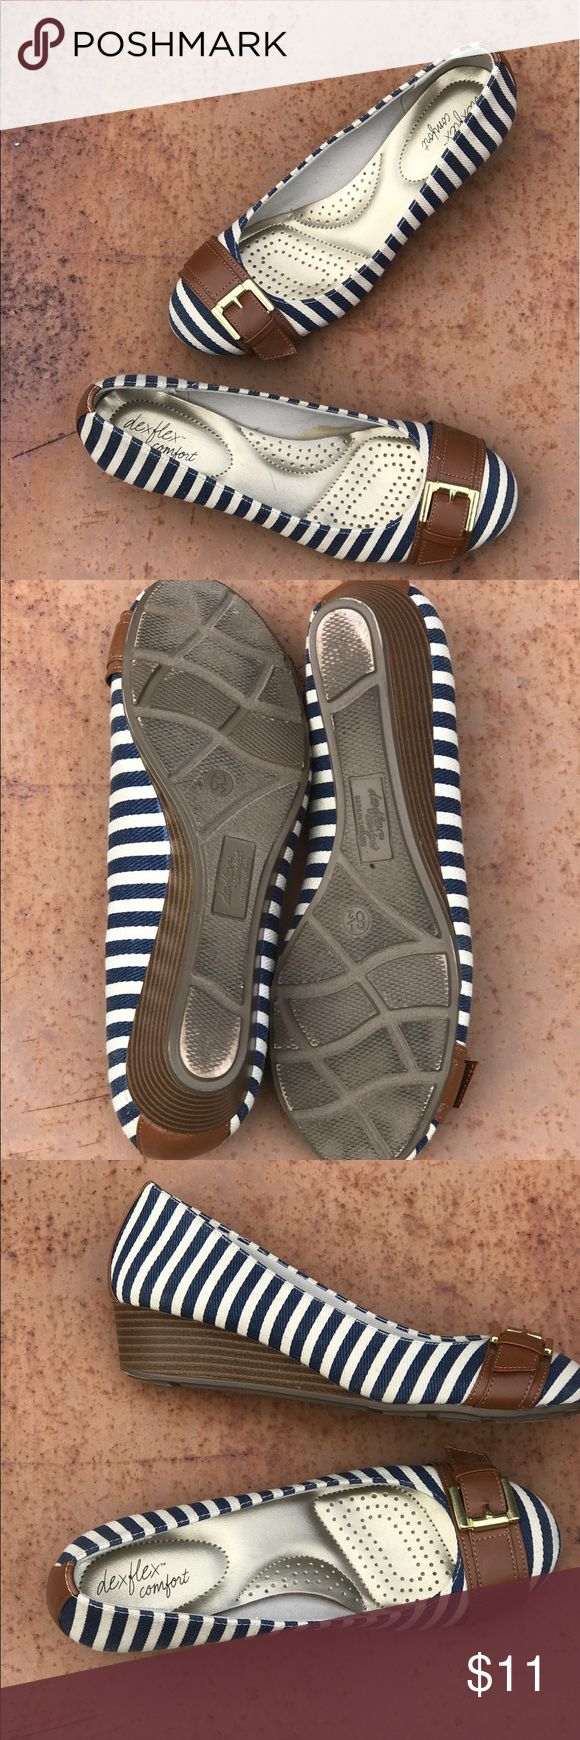 Dex Flex size 6 1/2 wedge shoe. Navy and white striped wedge heel with brown details.        Size 6 1/2. Worn no more than a few times. dex flex Shoes Wedges